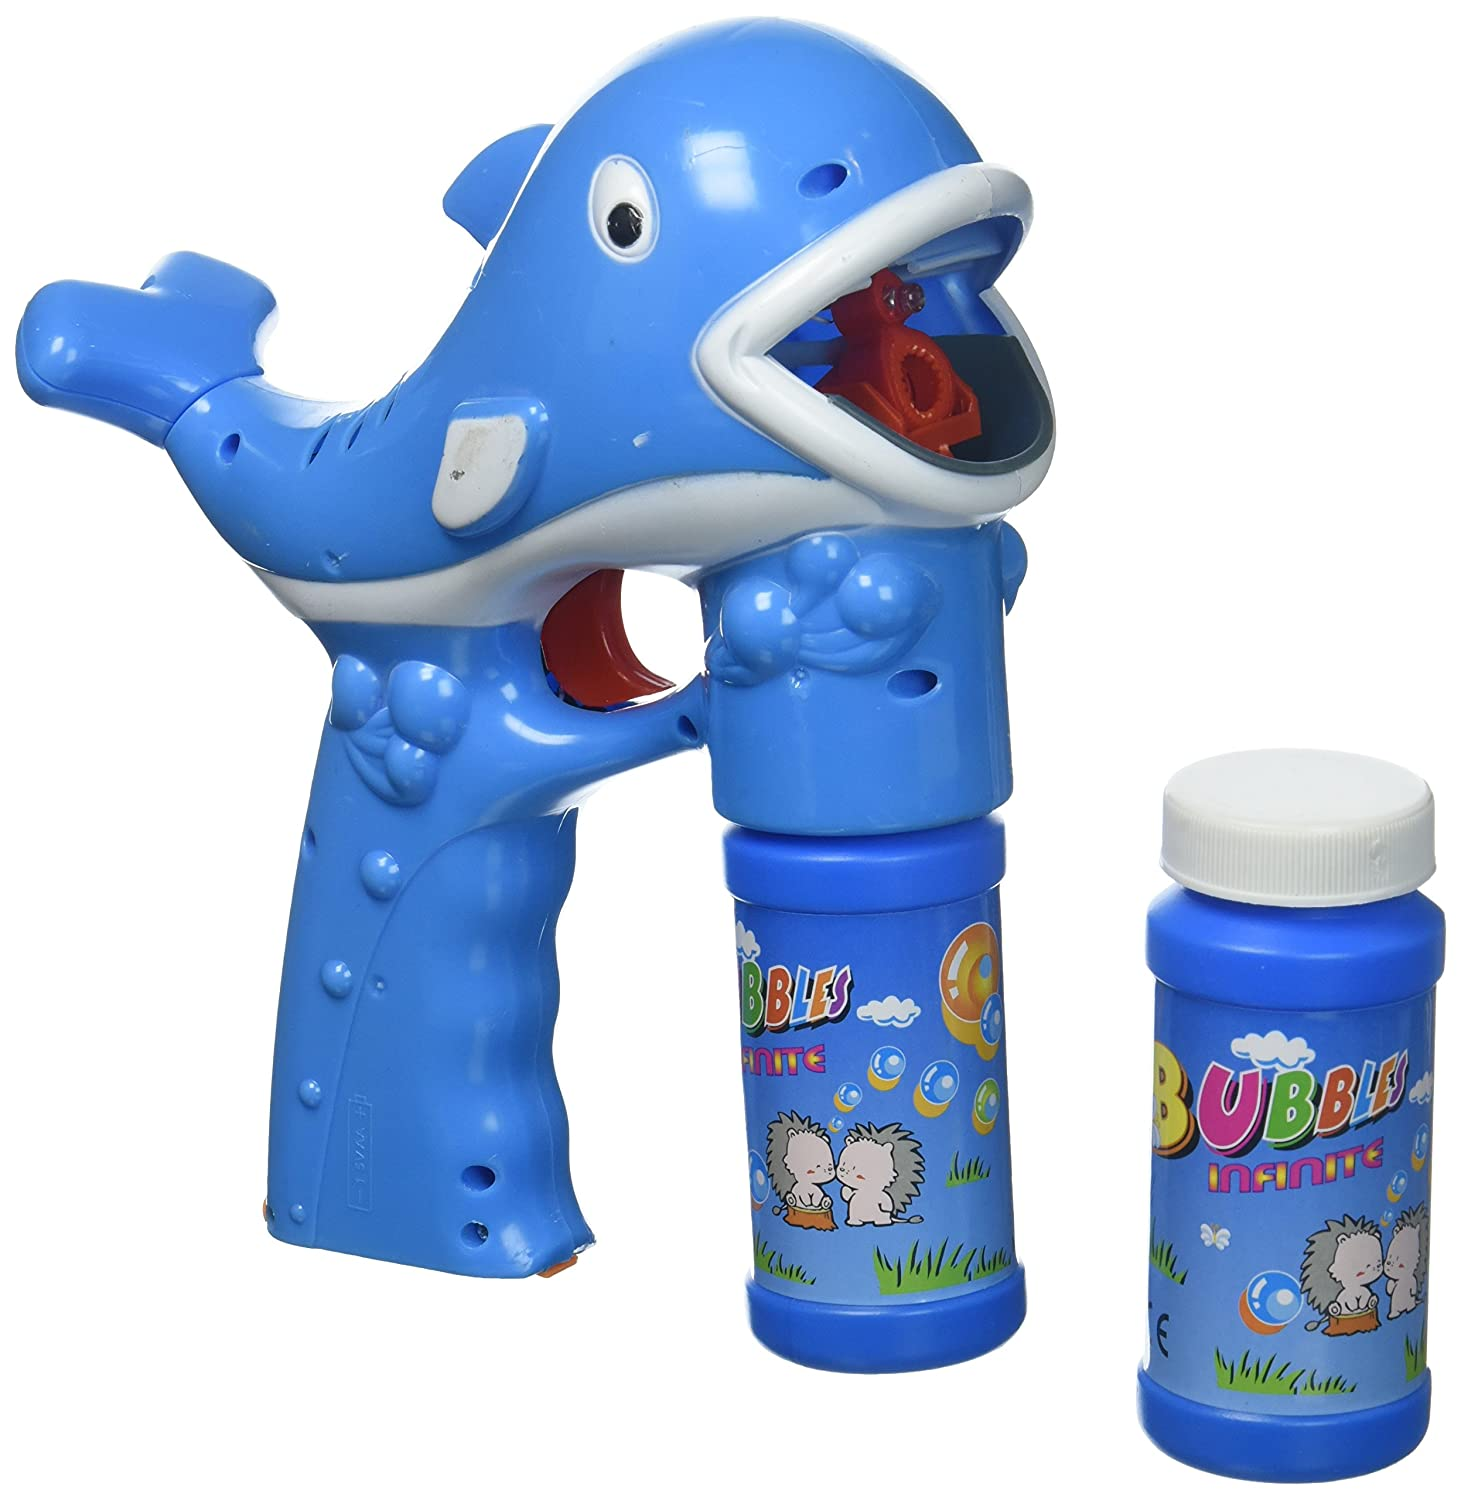 Fun Cartoon Whale Battery Operated Toy Bubble Blowing Gun w Light Music 2 Bottles of Bubble Liquid Blue